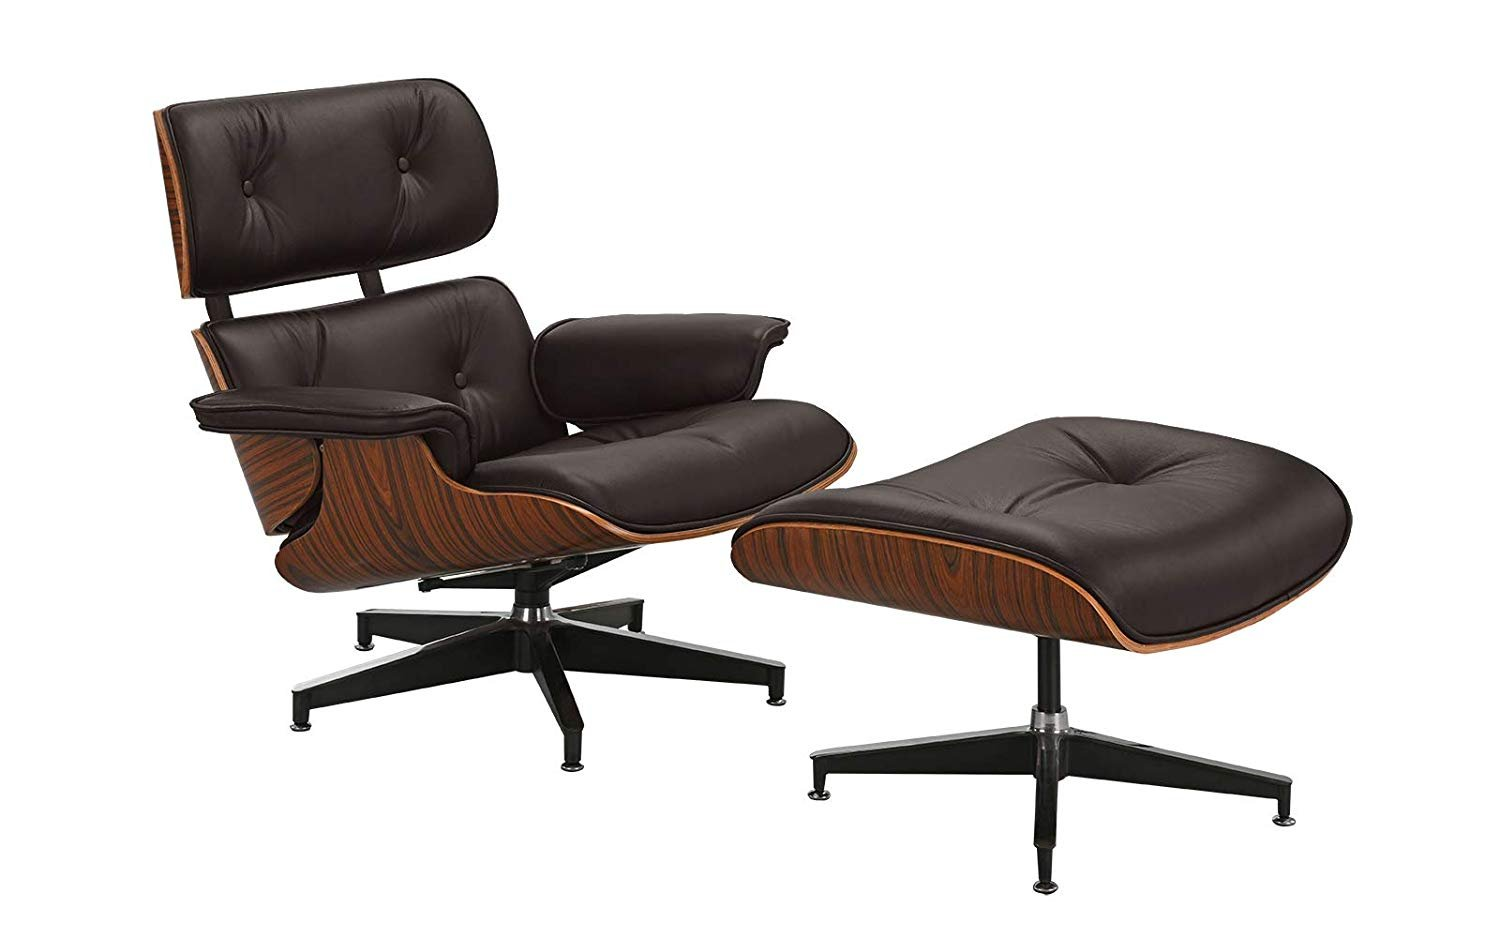 Eames Replica Details About Mid Century Inspired Swivel Lounge Chair And Ottoman Set Eames Replica Brown